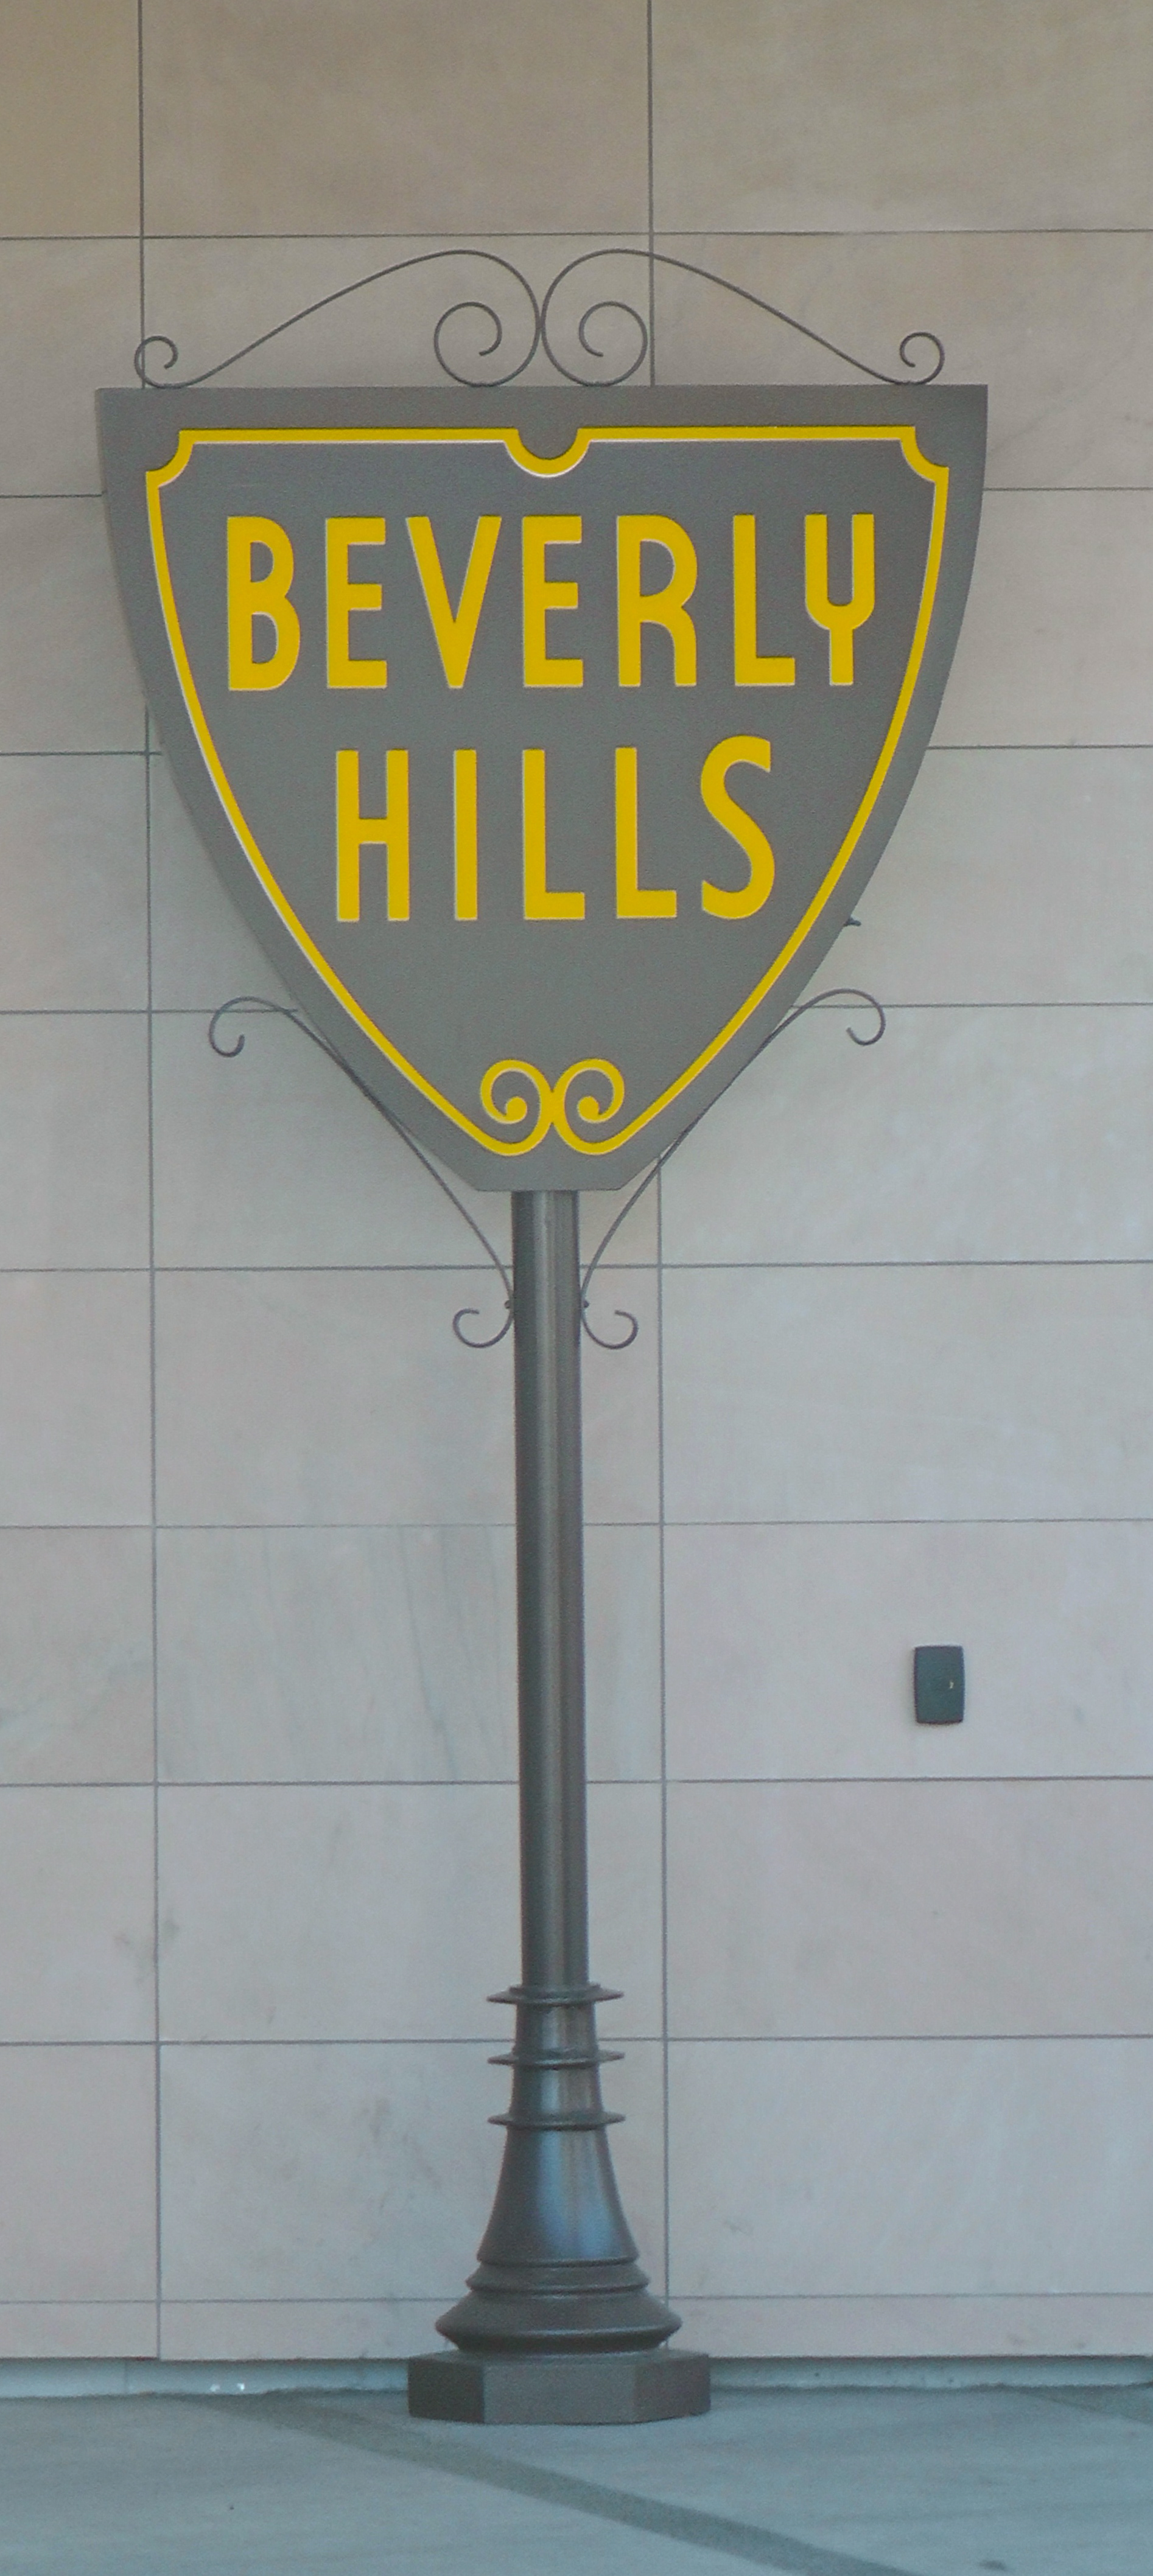 Beverly Hills, 90210 whatever